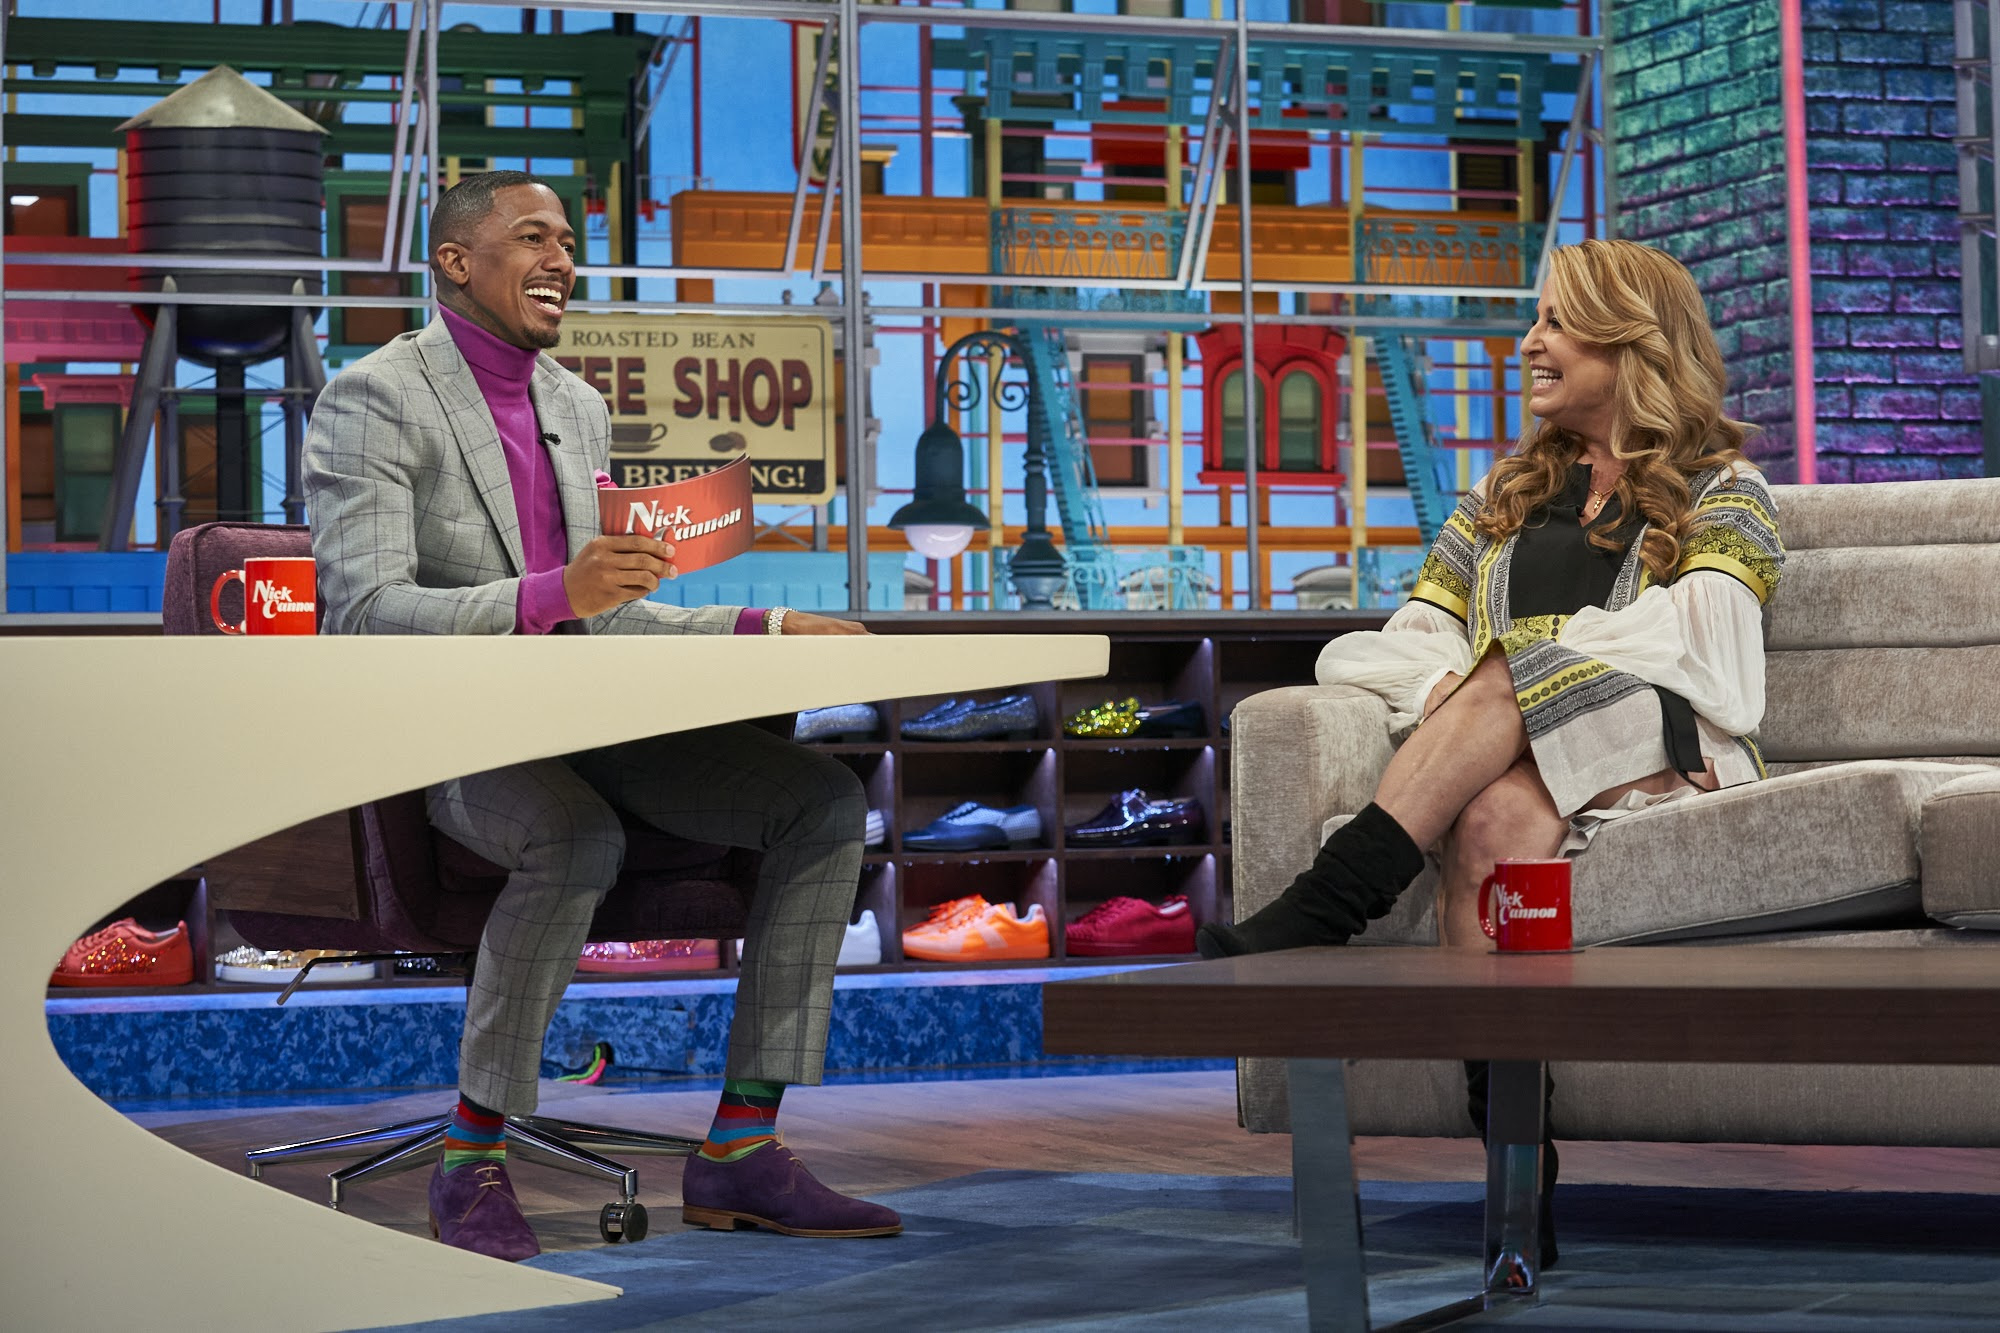 [WATCH] Nick Cannon Talks Celibacy with His Doctor on His Daytime Talk Show